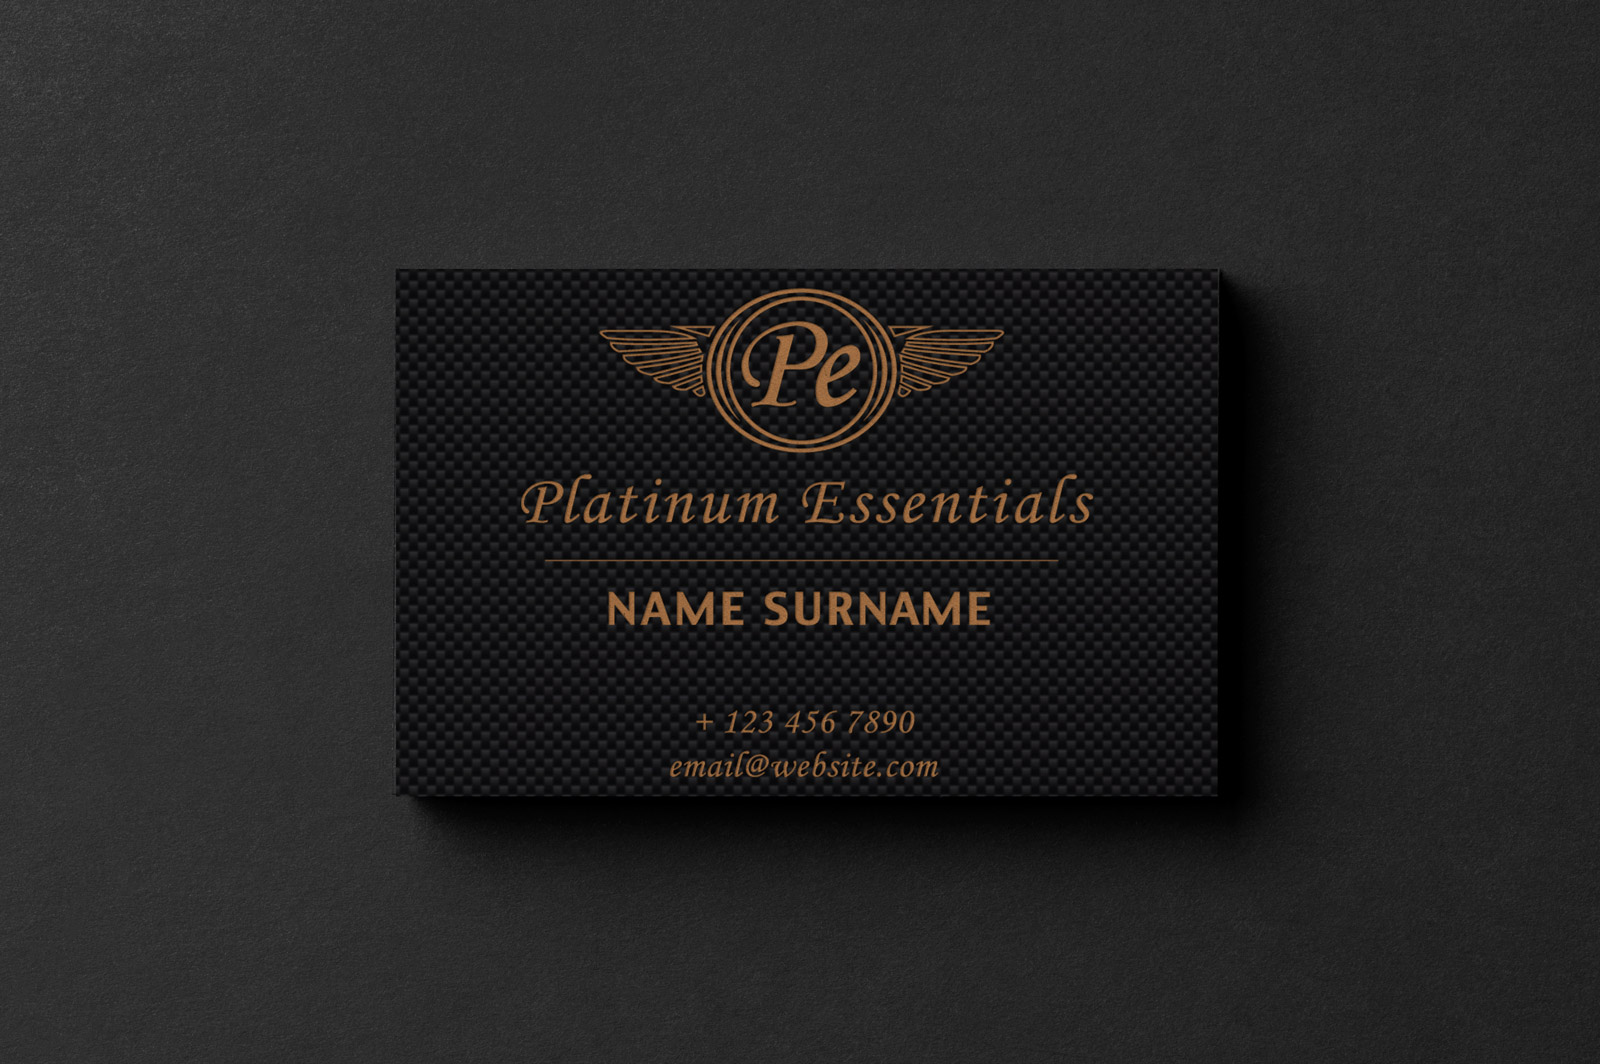 Platinum-Essentials-Cardissimo-Carbon-Fibre-Business-Card